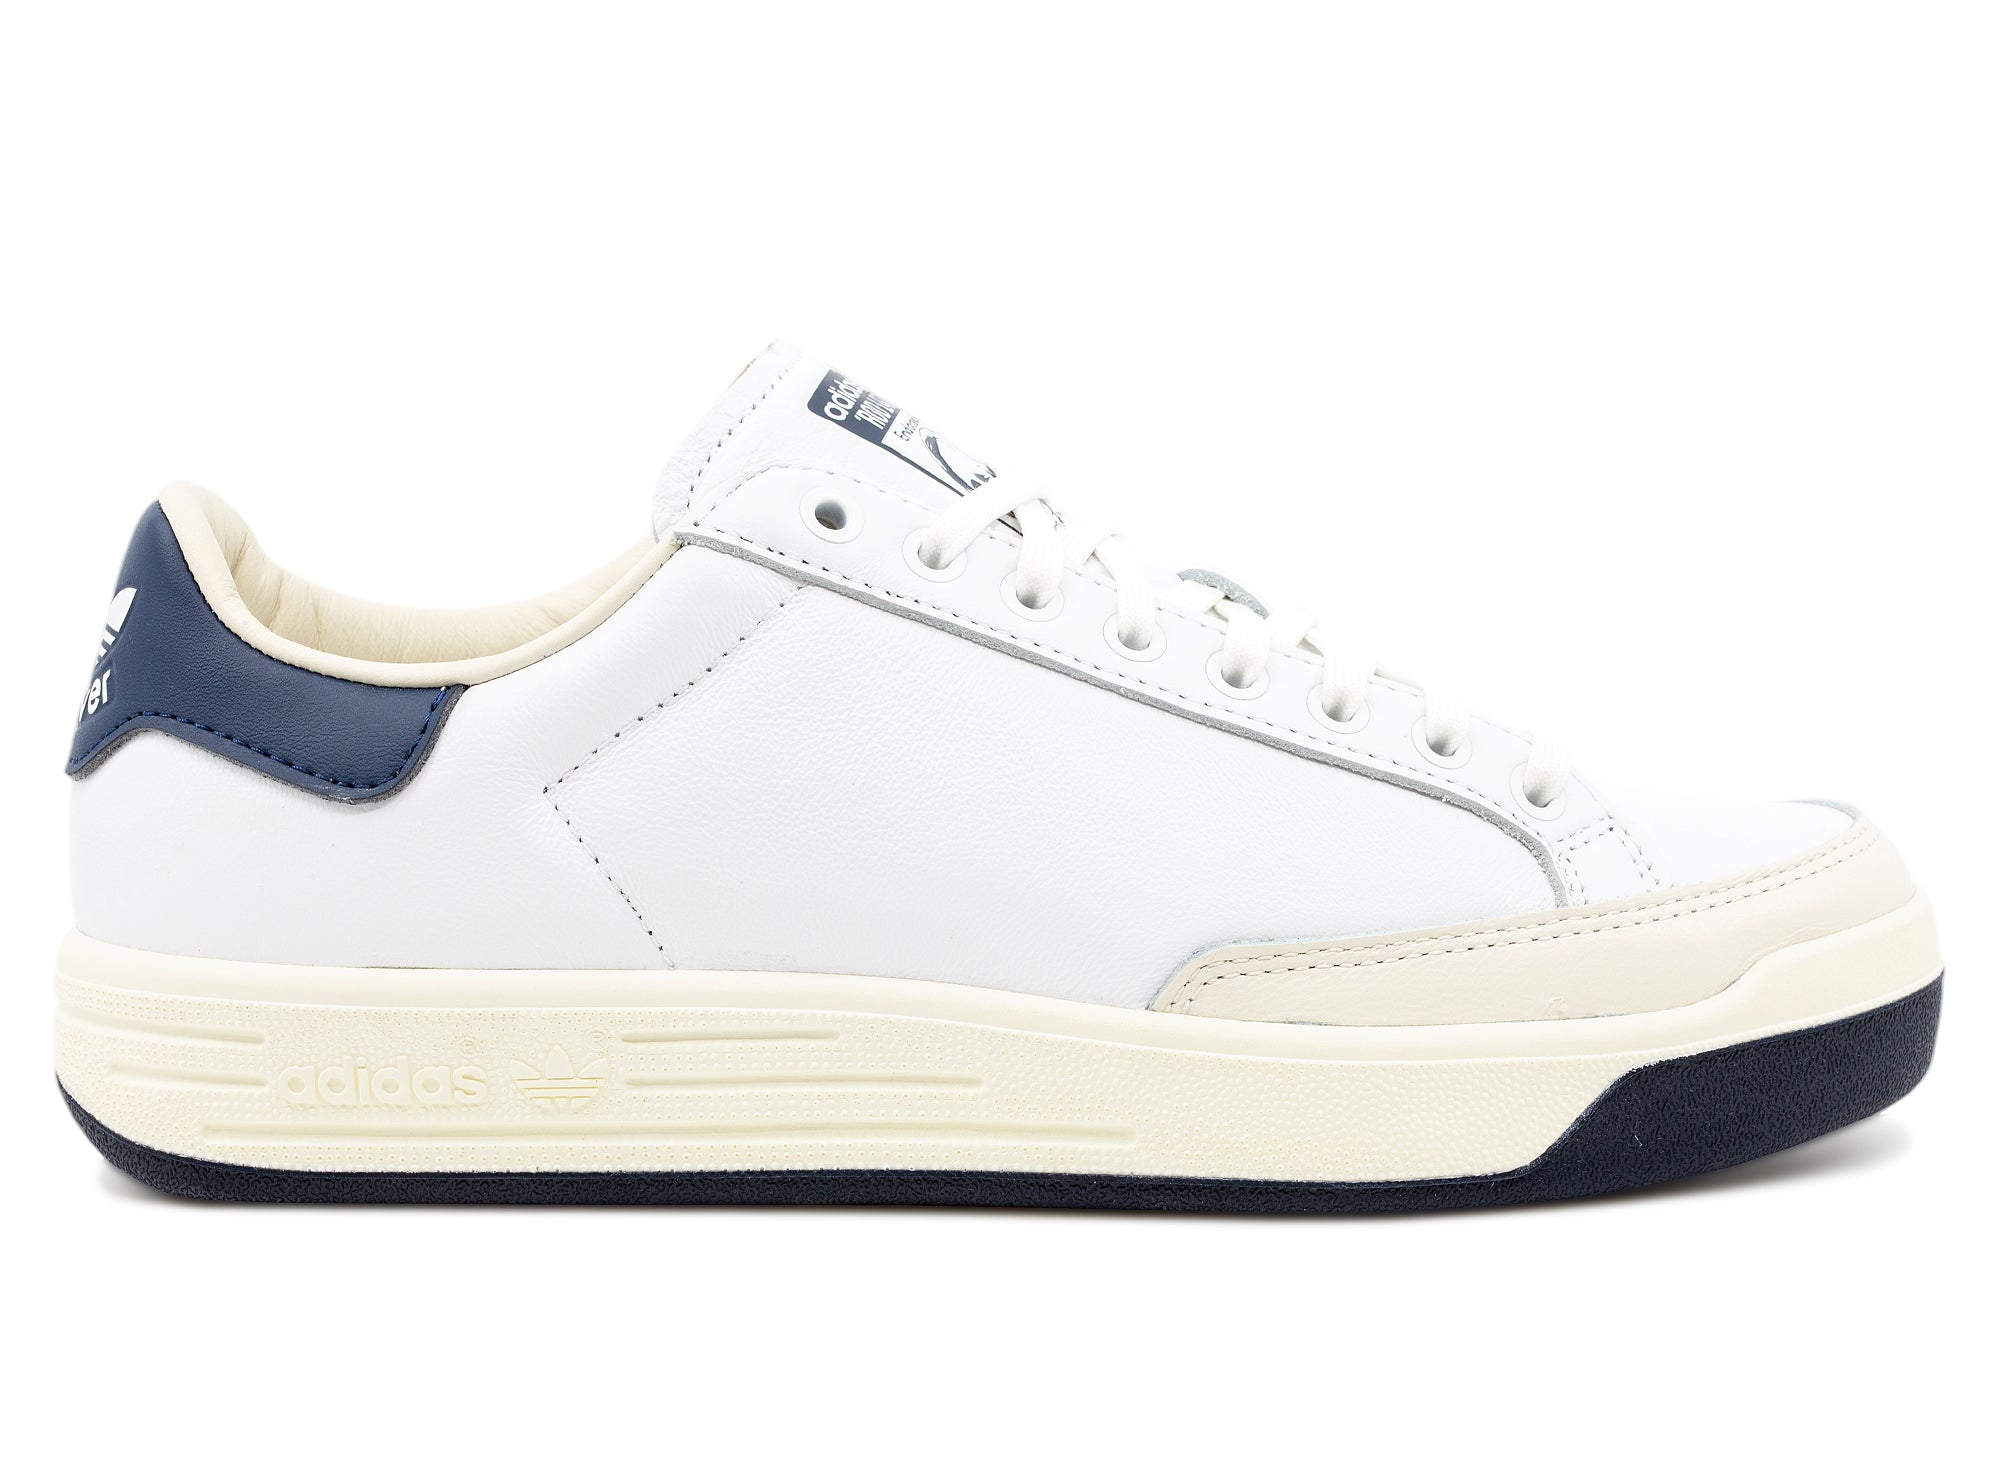 Adidas Rod Laver Sneakers xld